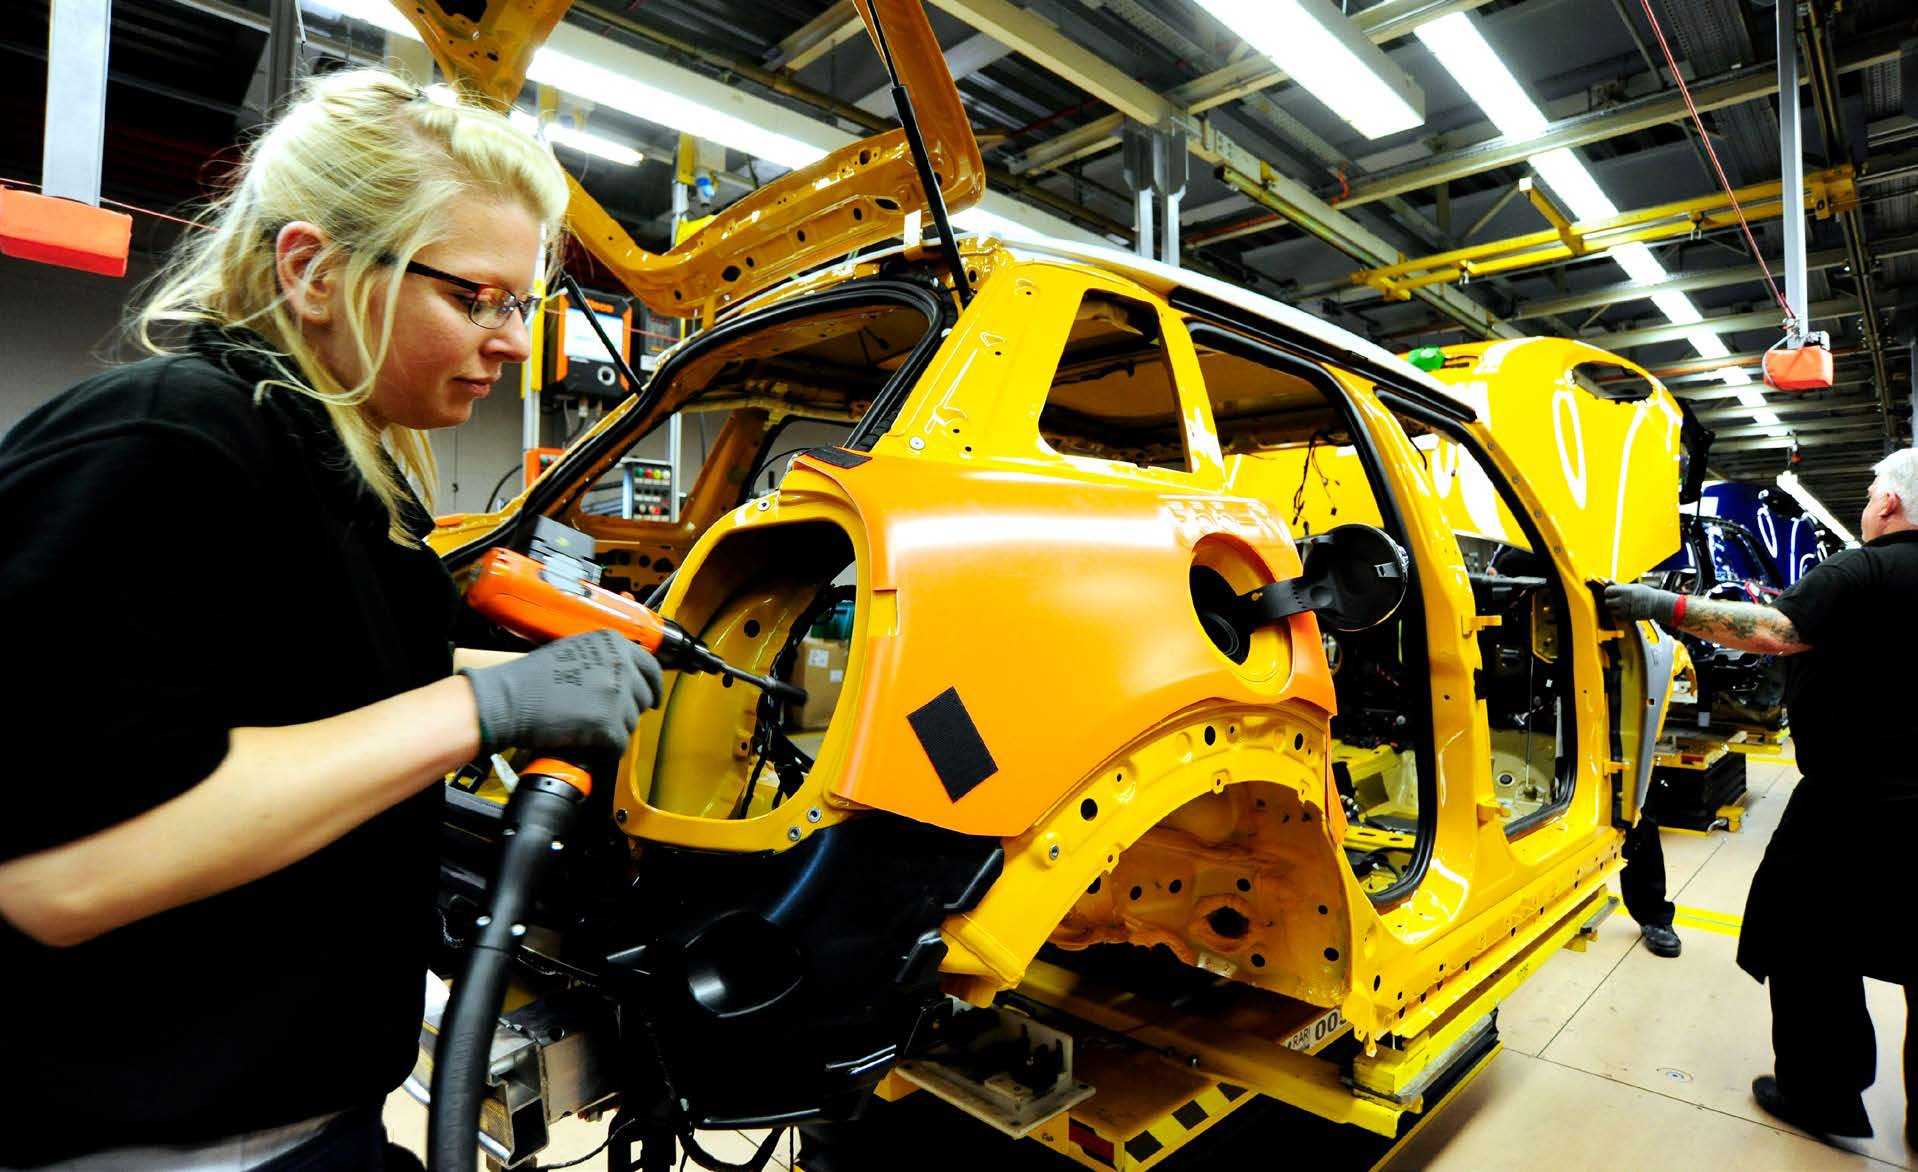 A new MINI drives off the assembly line every 68 seconds - image courtesy of MINI Oxford.